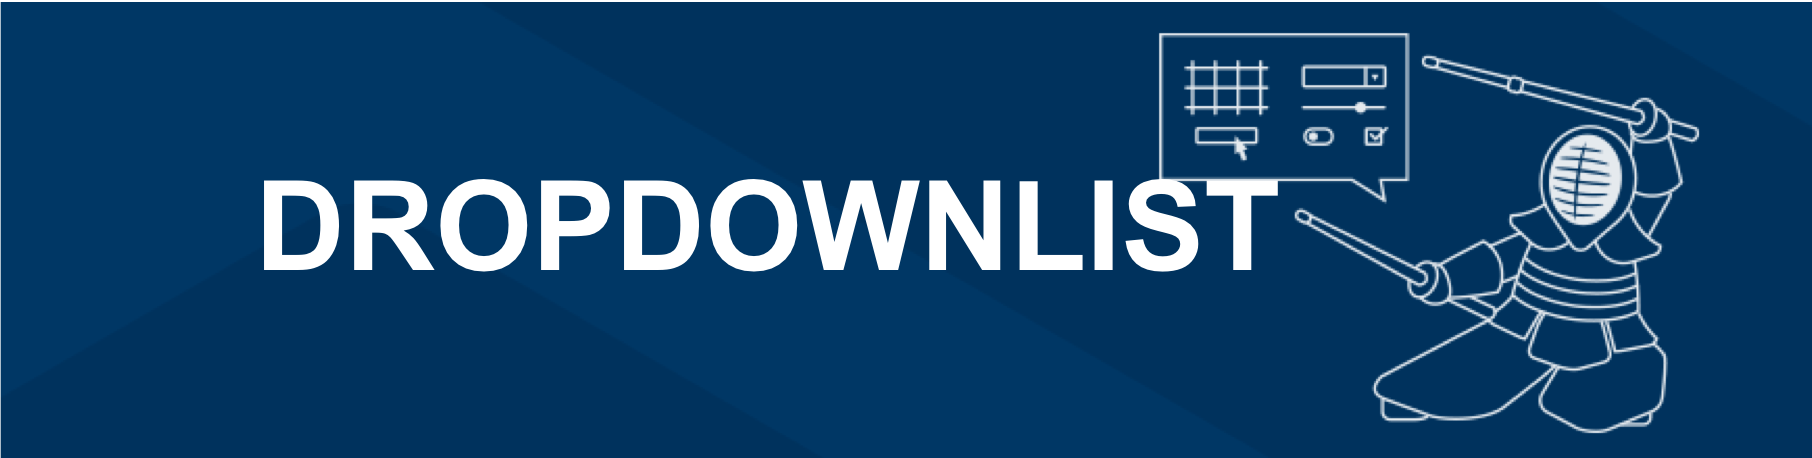 How to Use a DropDownList UI Component in Your Web App